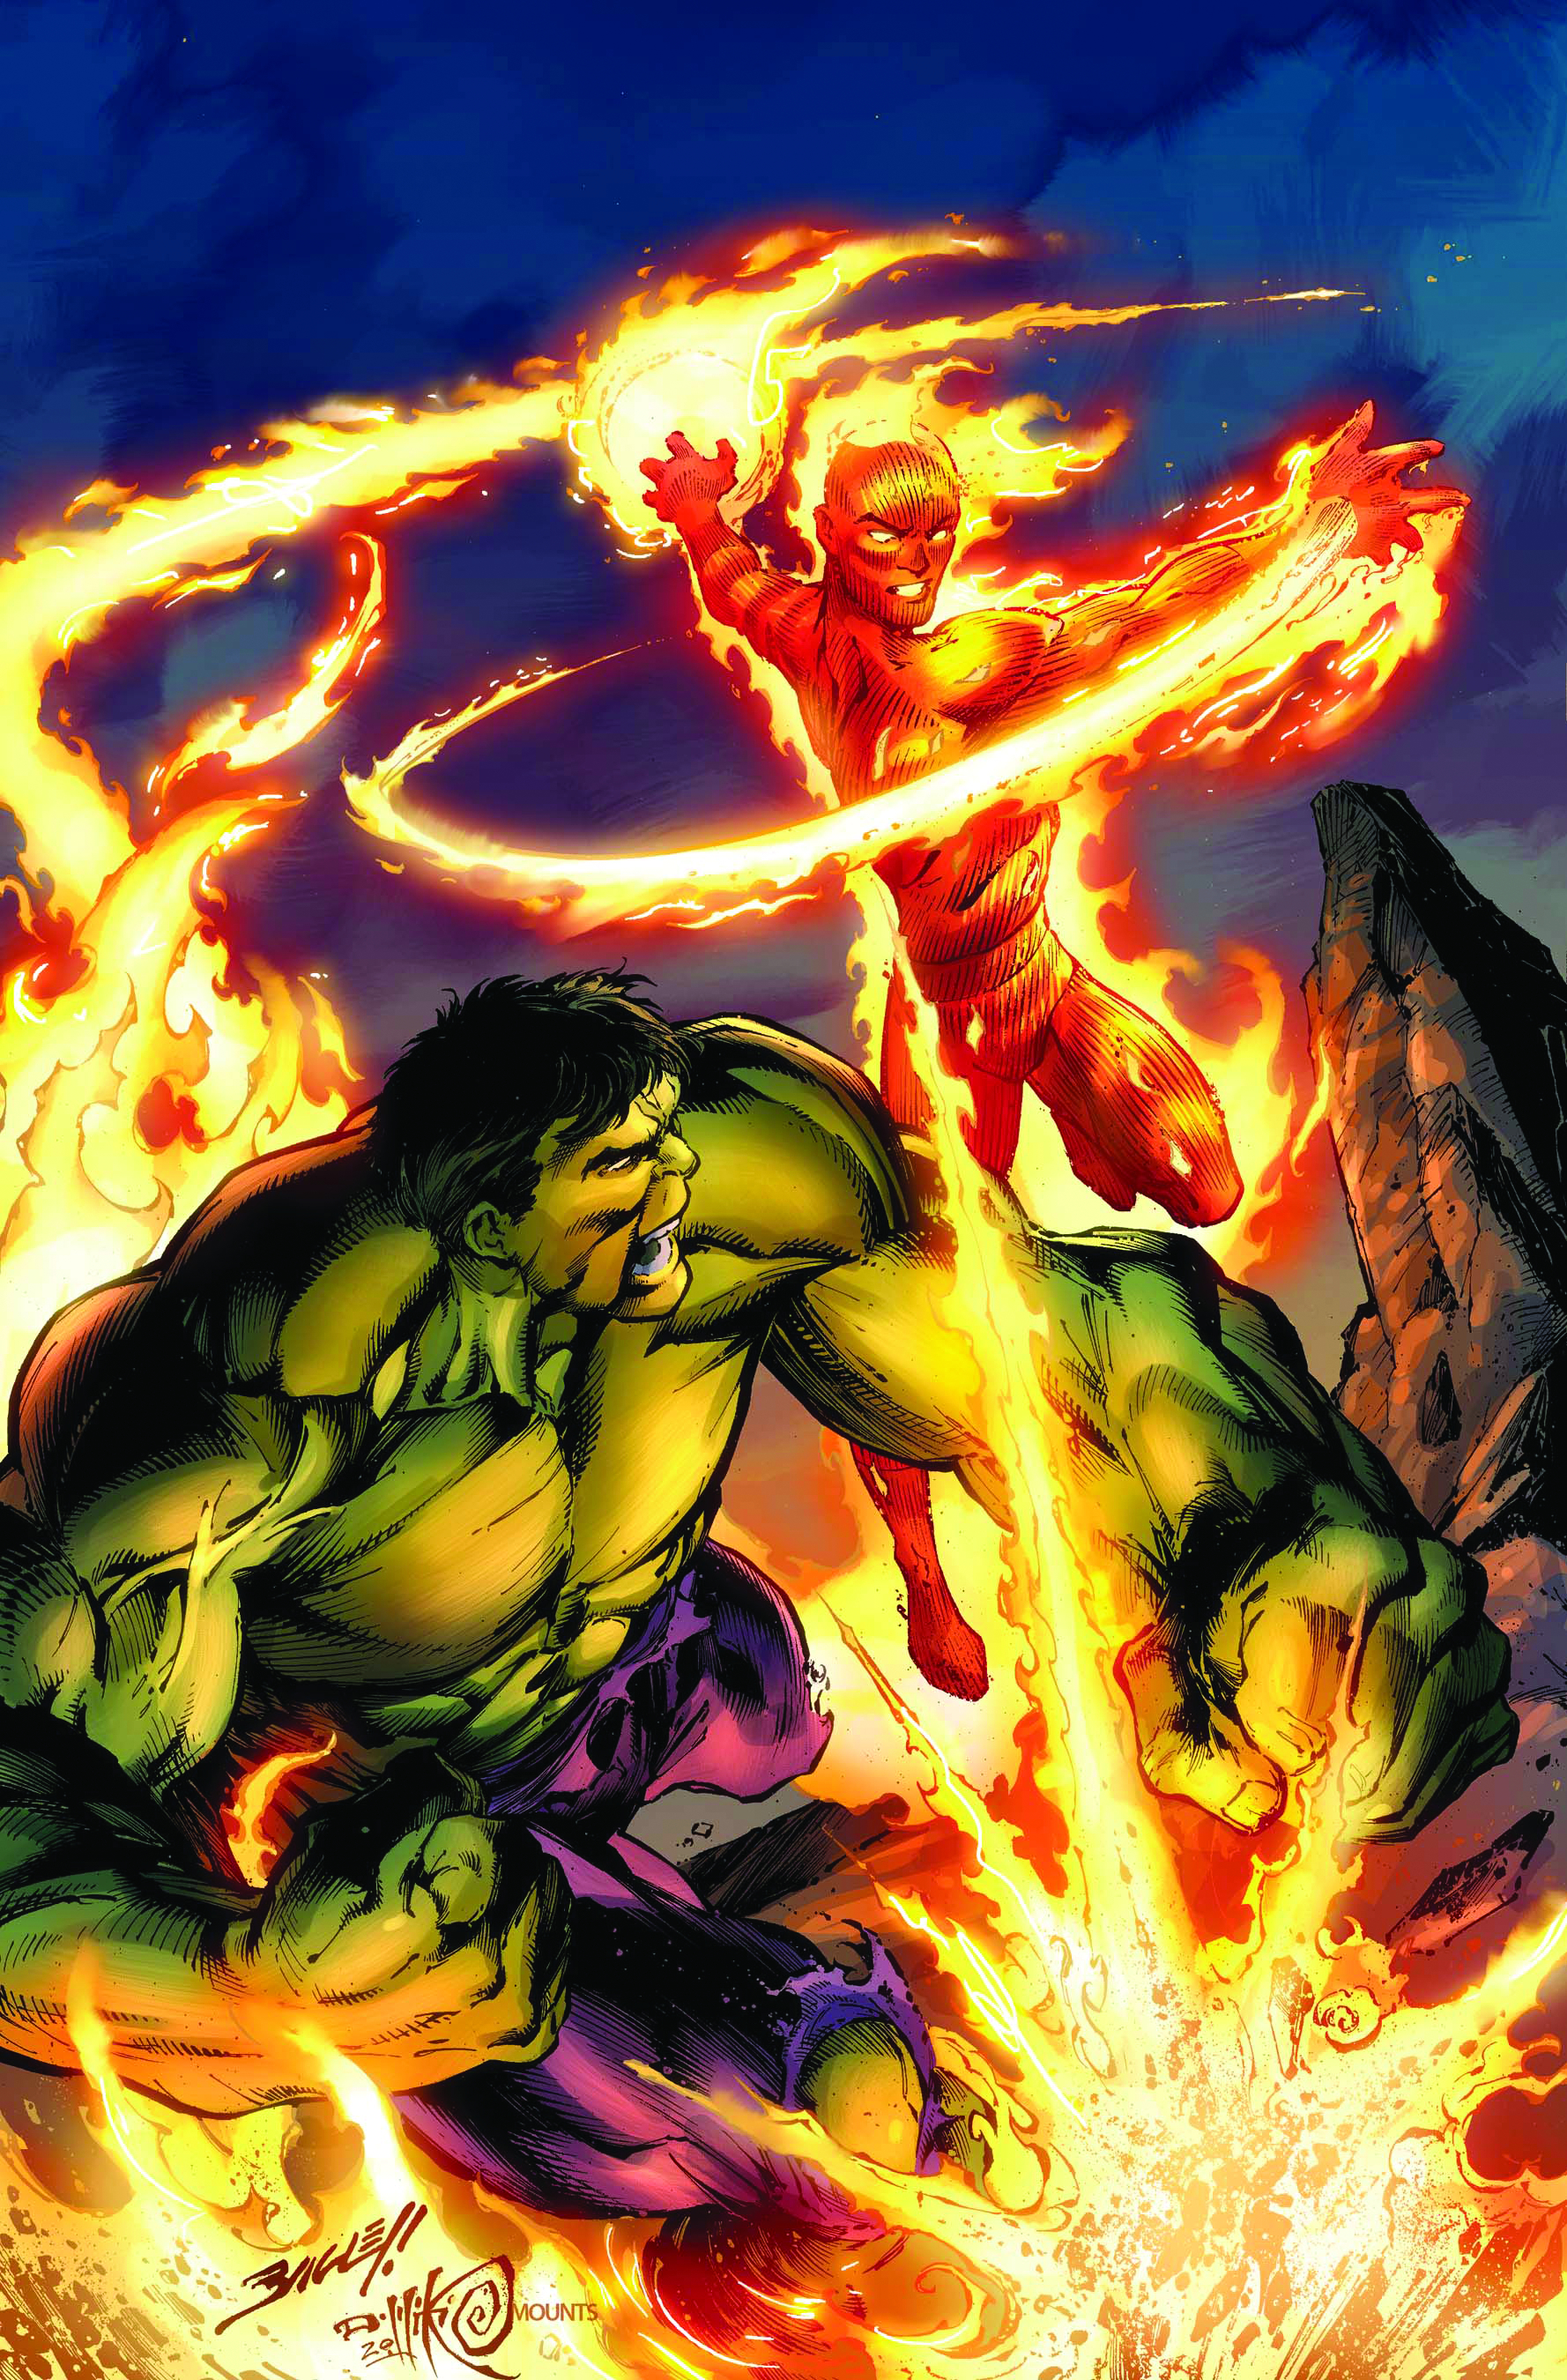 INCREDIBLE HULK & HUMAN TORCH FROM MARVEL VAULT #1